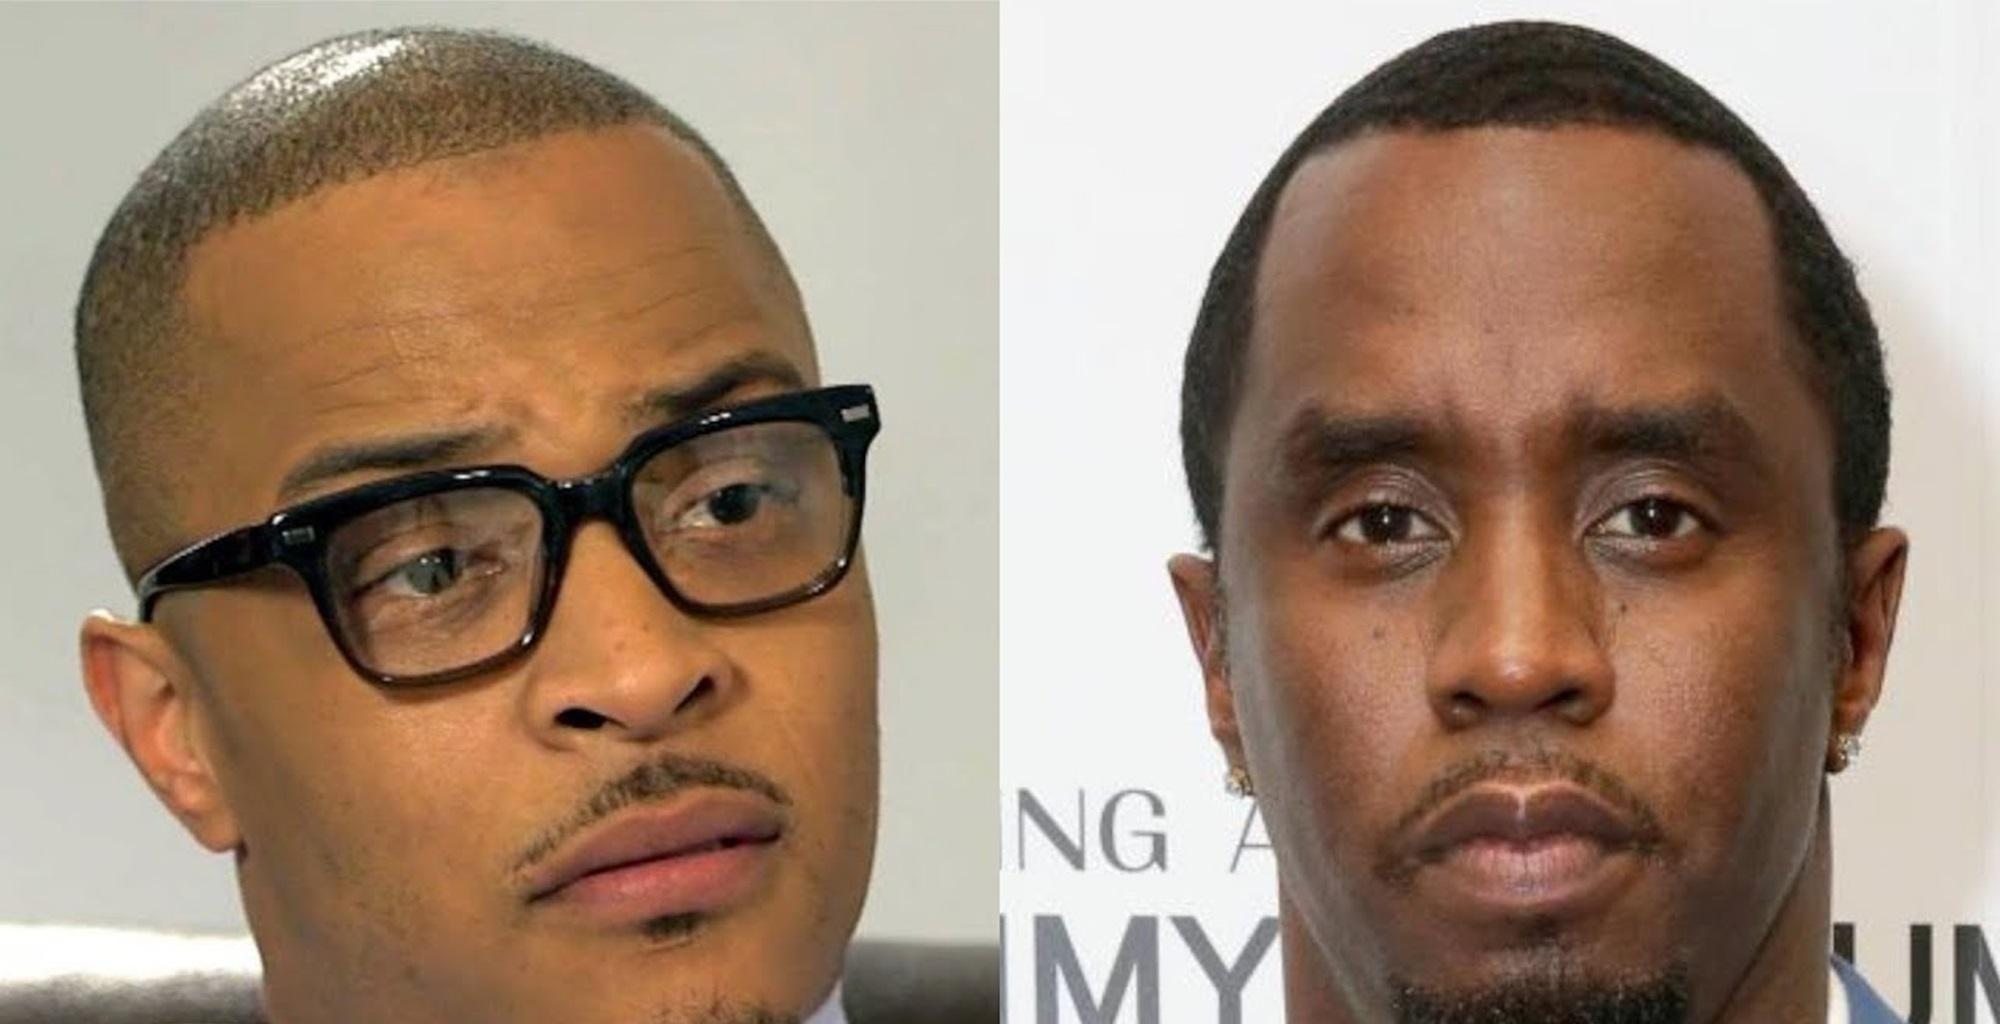 T.I. Shares His Opinion On Amber Guyger And Botham Jean Trial As The Matter Takes Another Twist With The Murder Of Joshua Brown